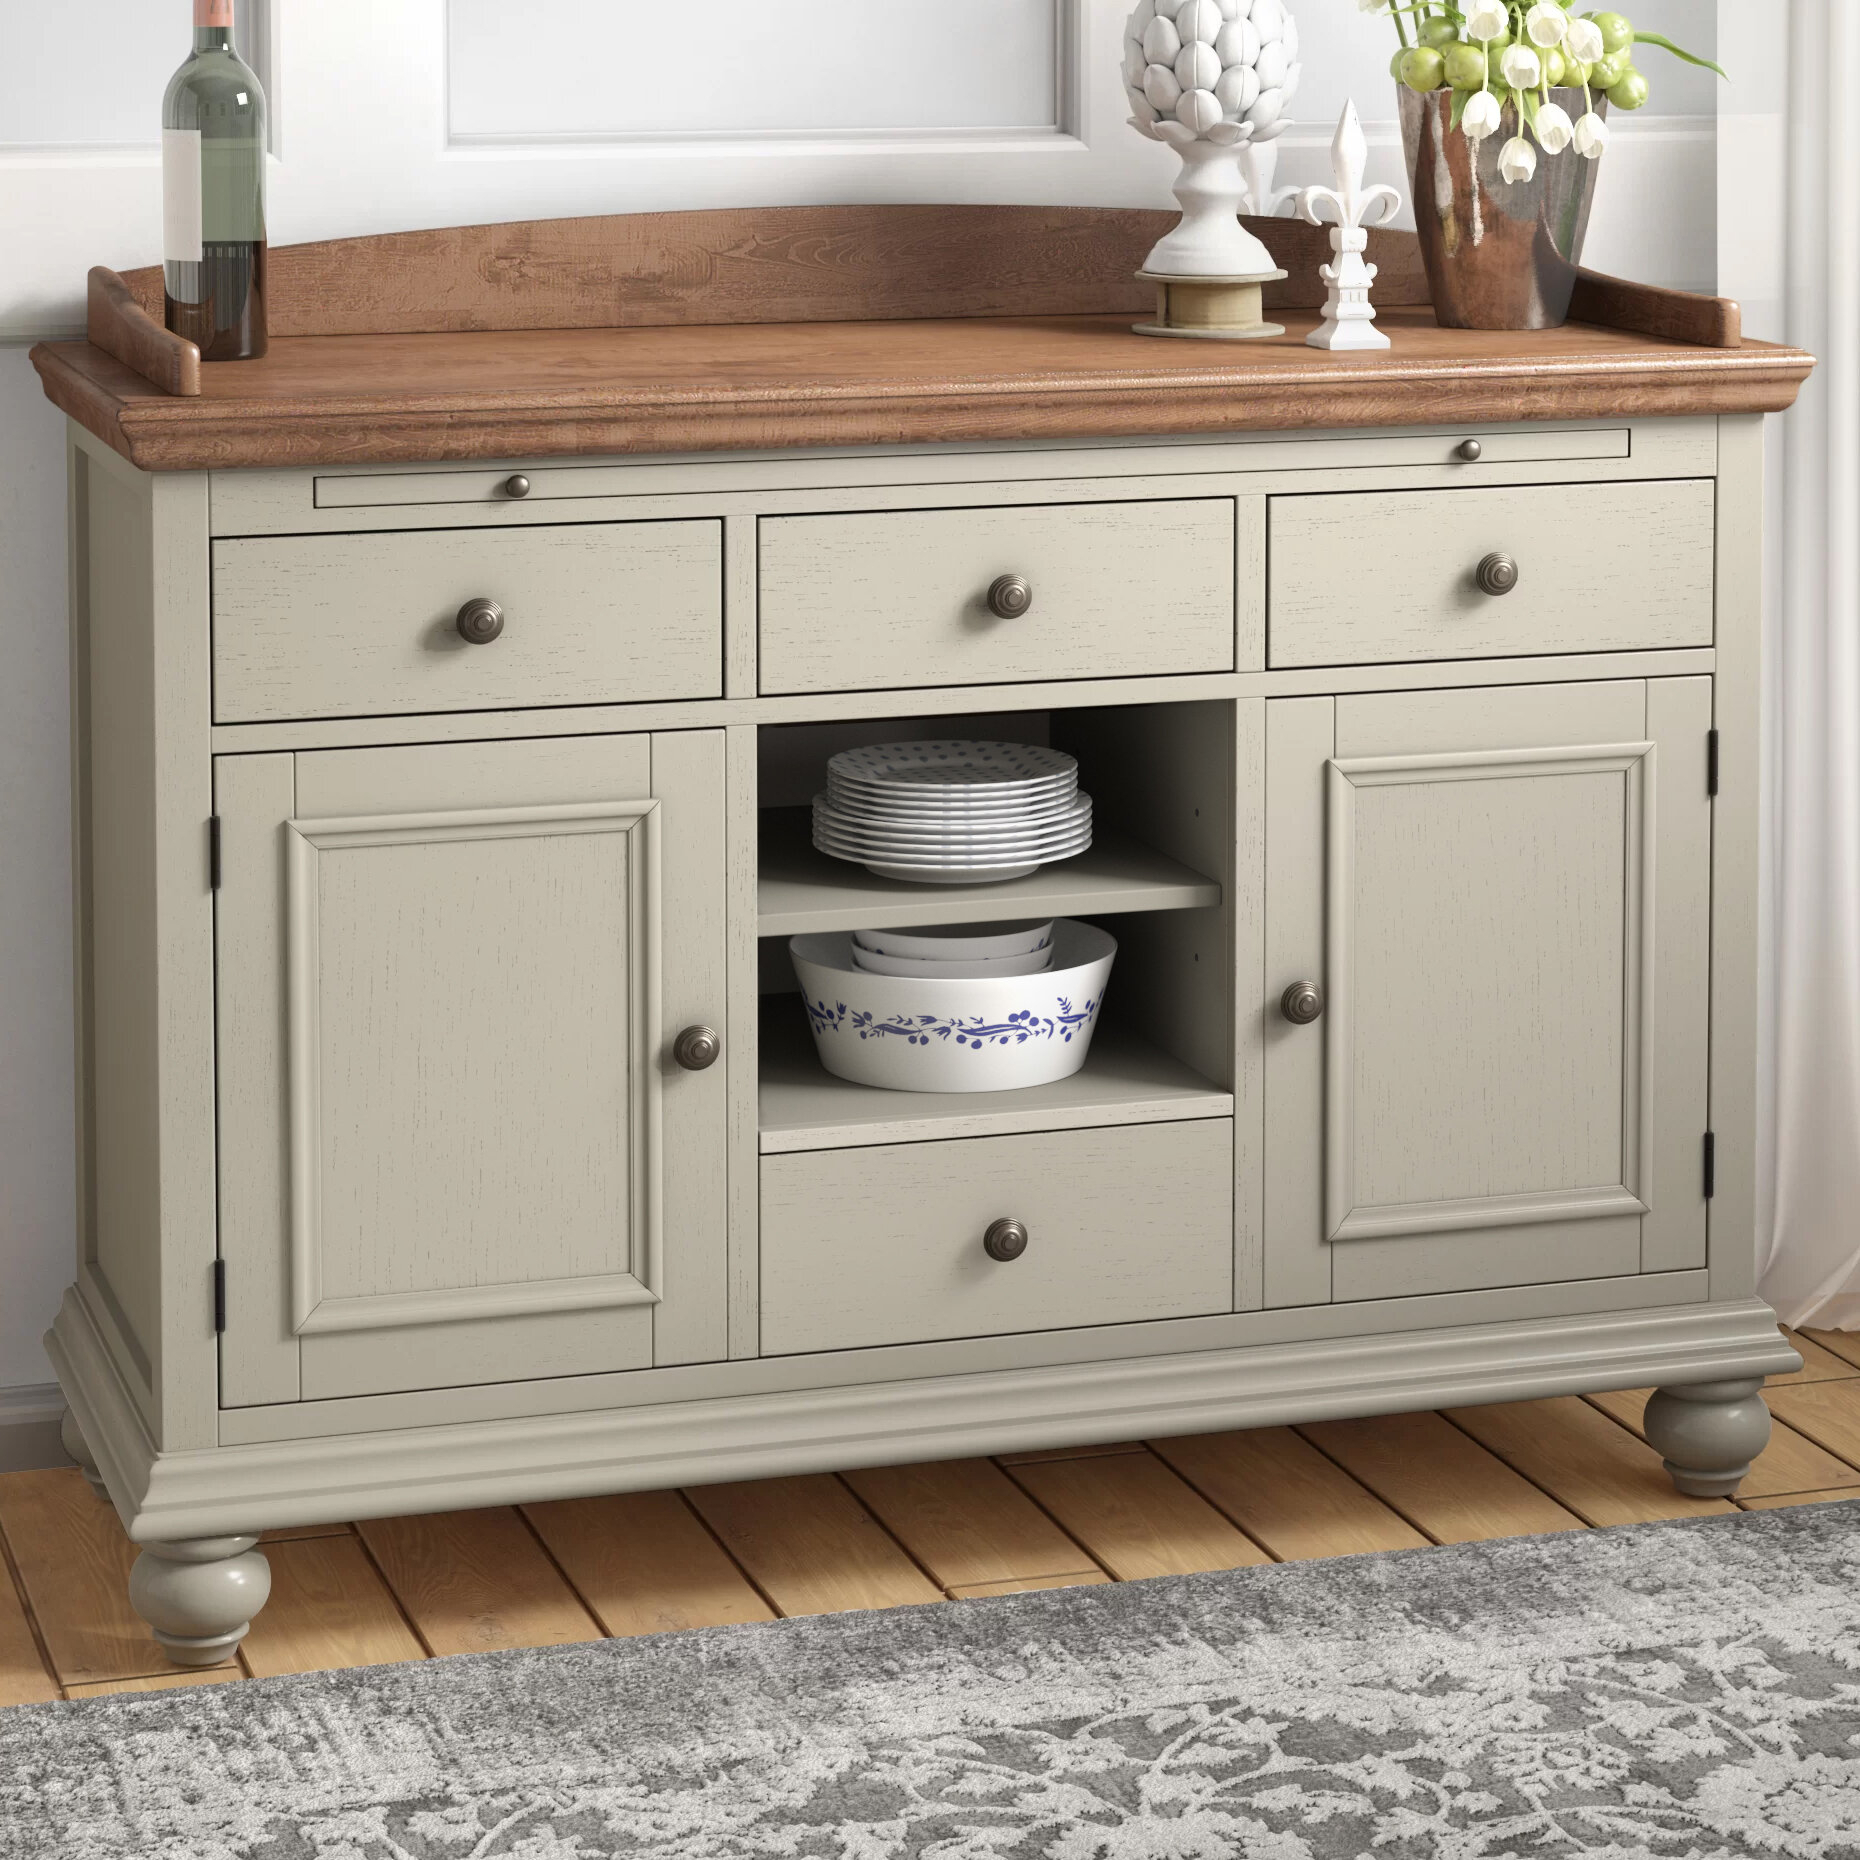 Rosecliff Heights Ruskin Sideboard & Reviews | Wayfair With Cambrai Sideboards (View 21 of 30)